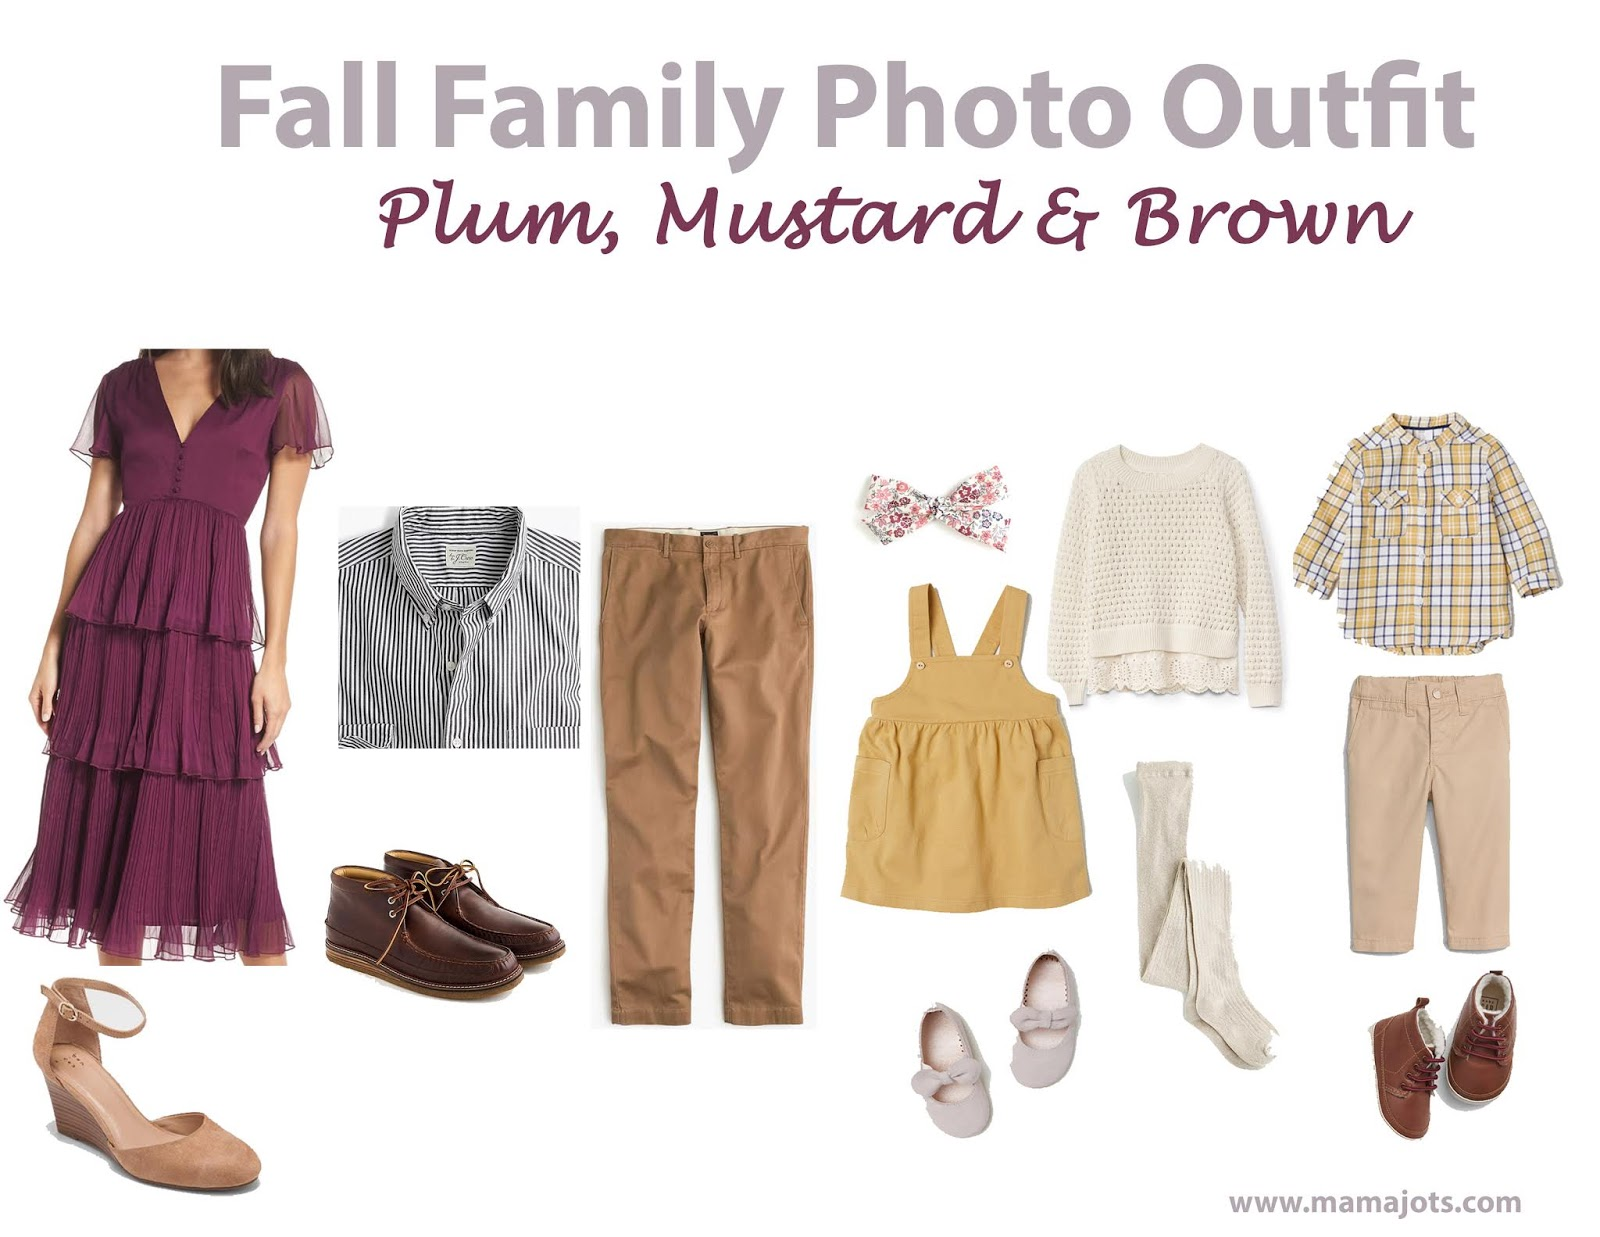 fall family photo outfit ideas plum, purple, brown, mustard